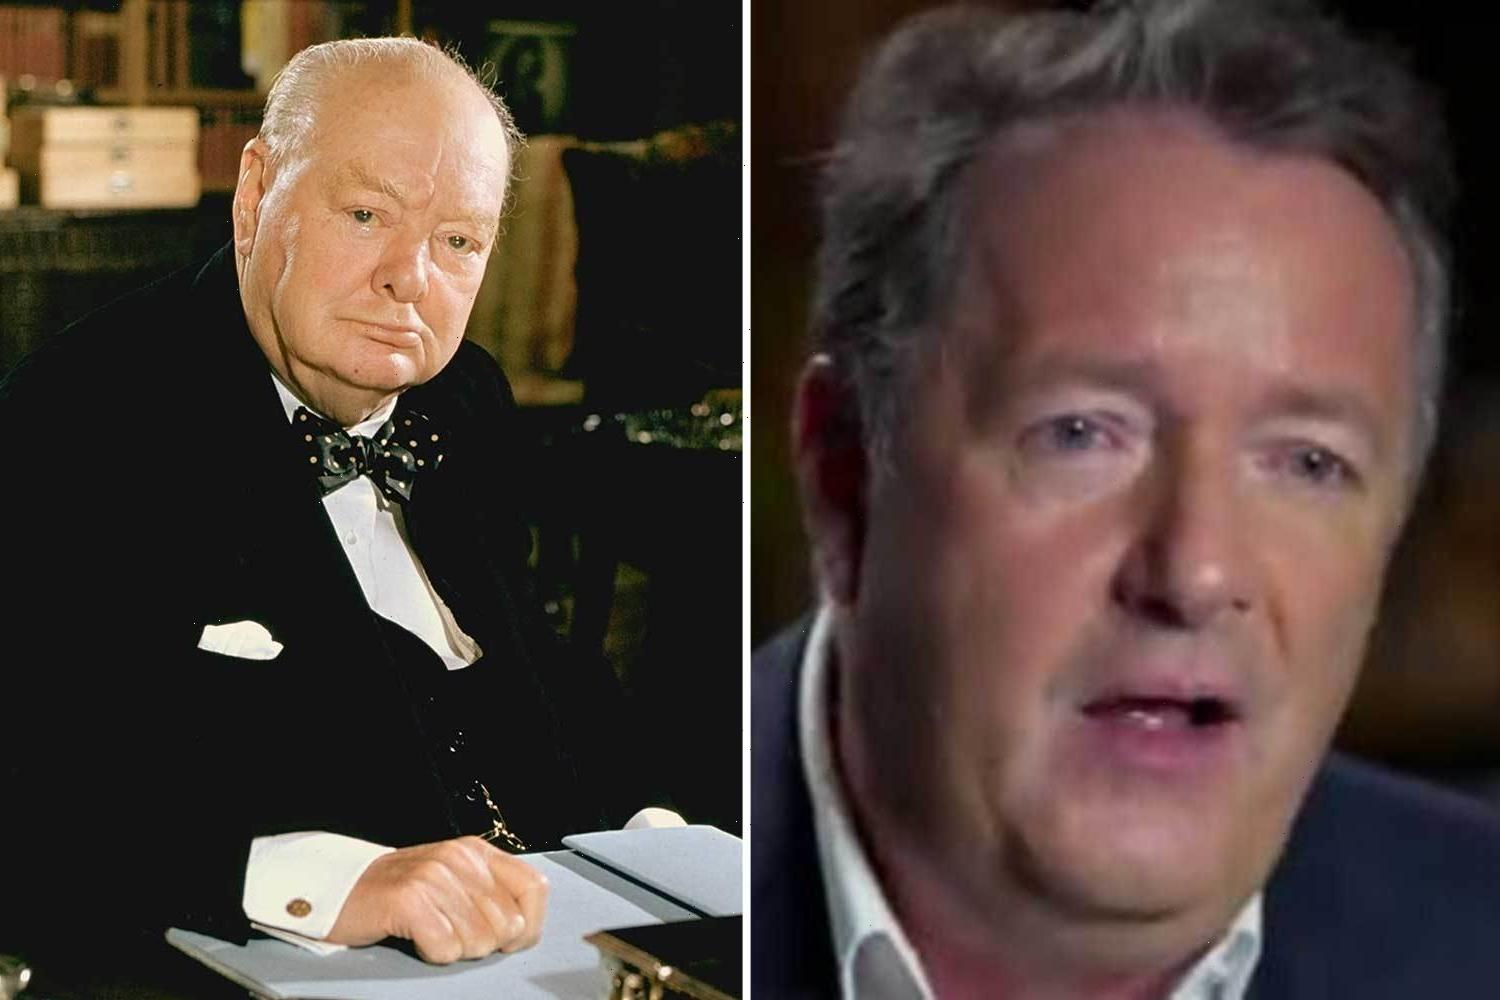 Piers Morgan compares himself to Winston Churchill and says having Meghan Markle as an 'enemy' is good